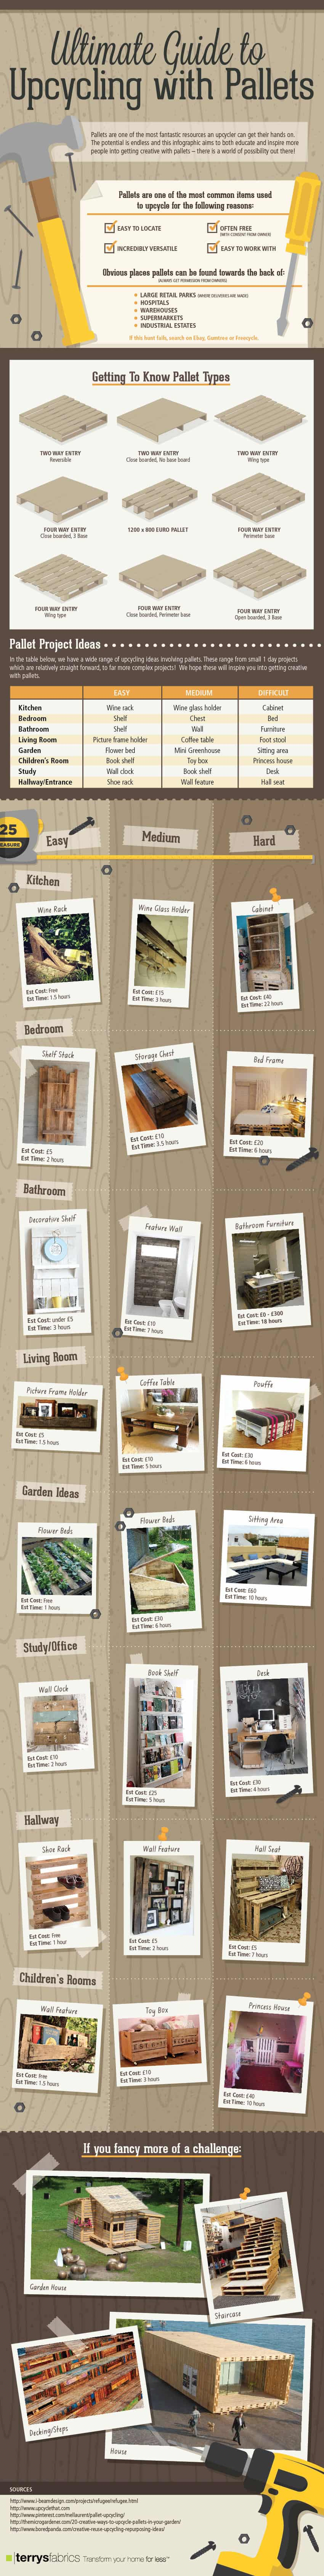 ultimate-guide-to-upcycling-with-pallets